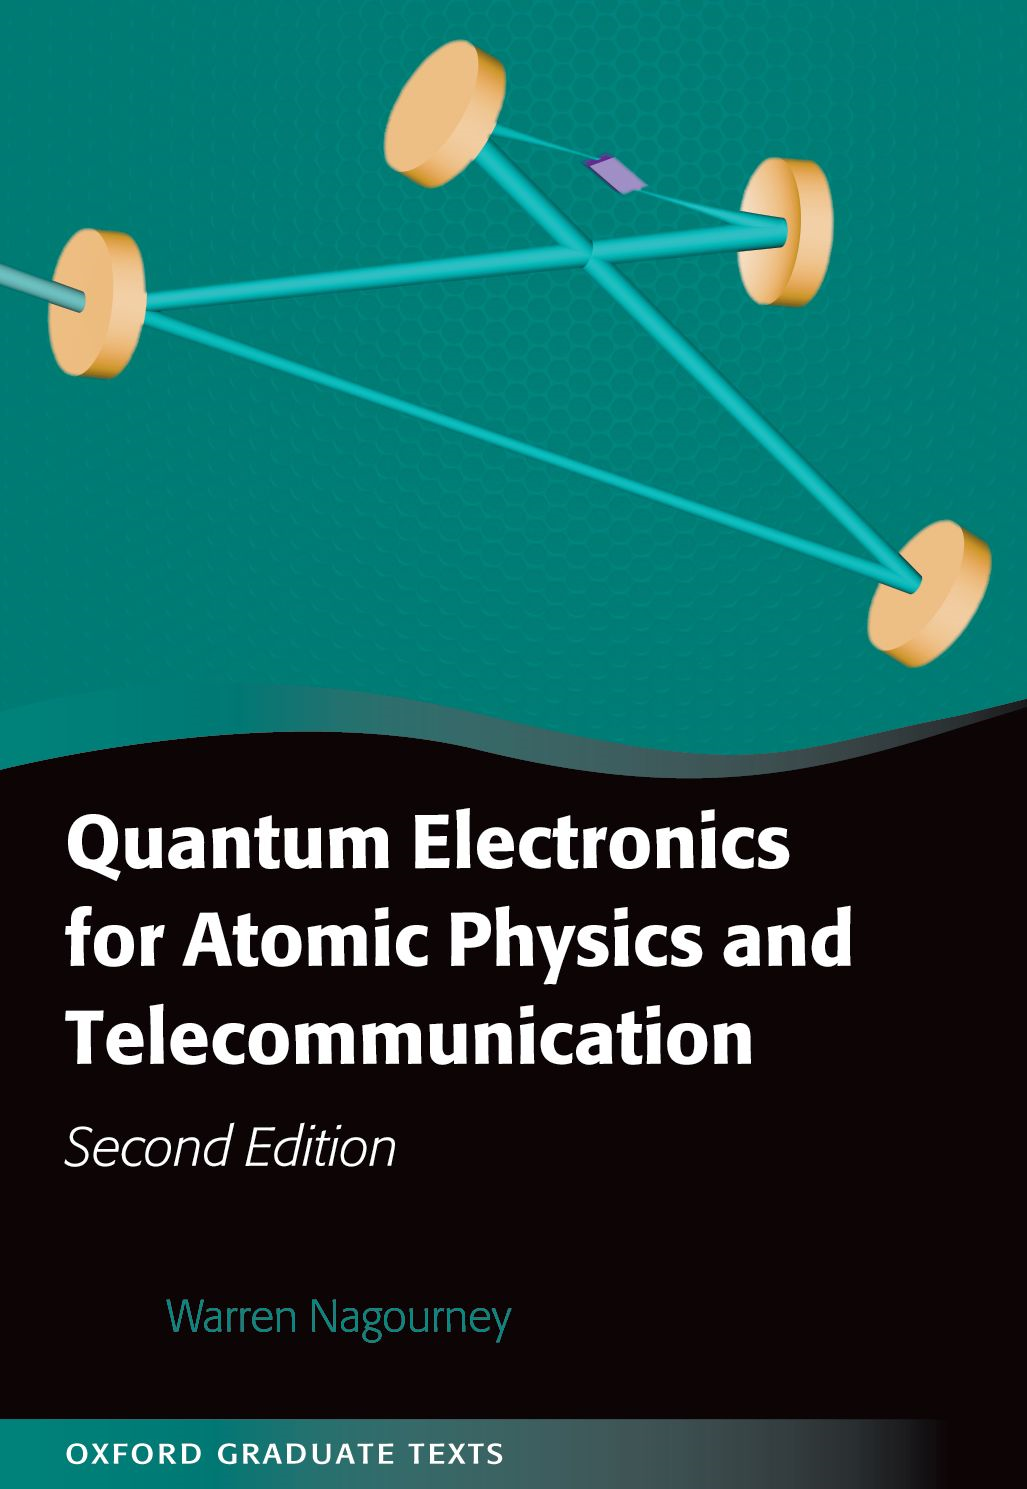 Quantum Electronics for Atomic Physics and Telecommunication